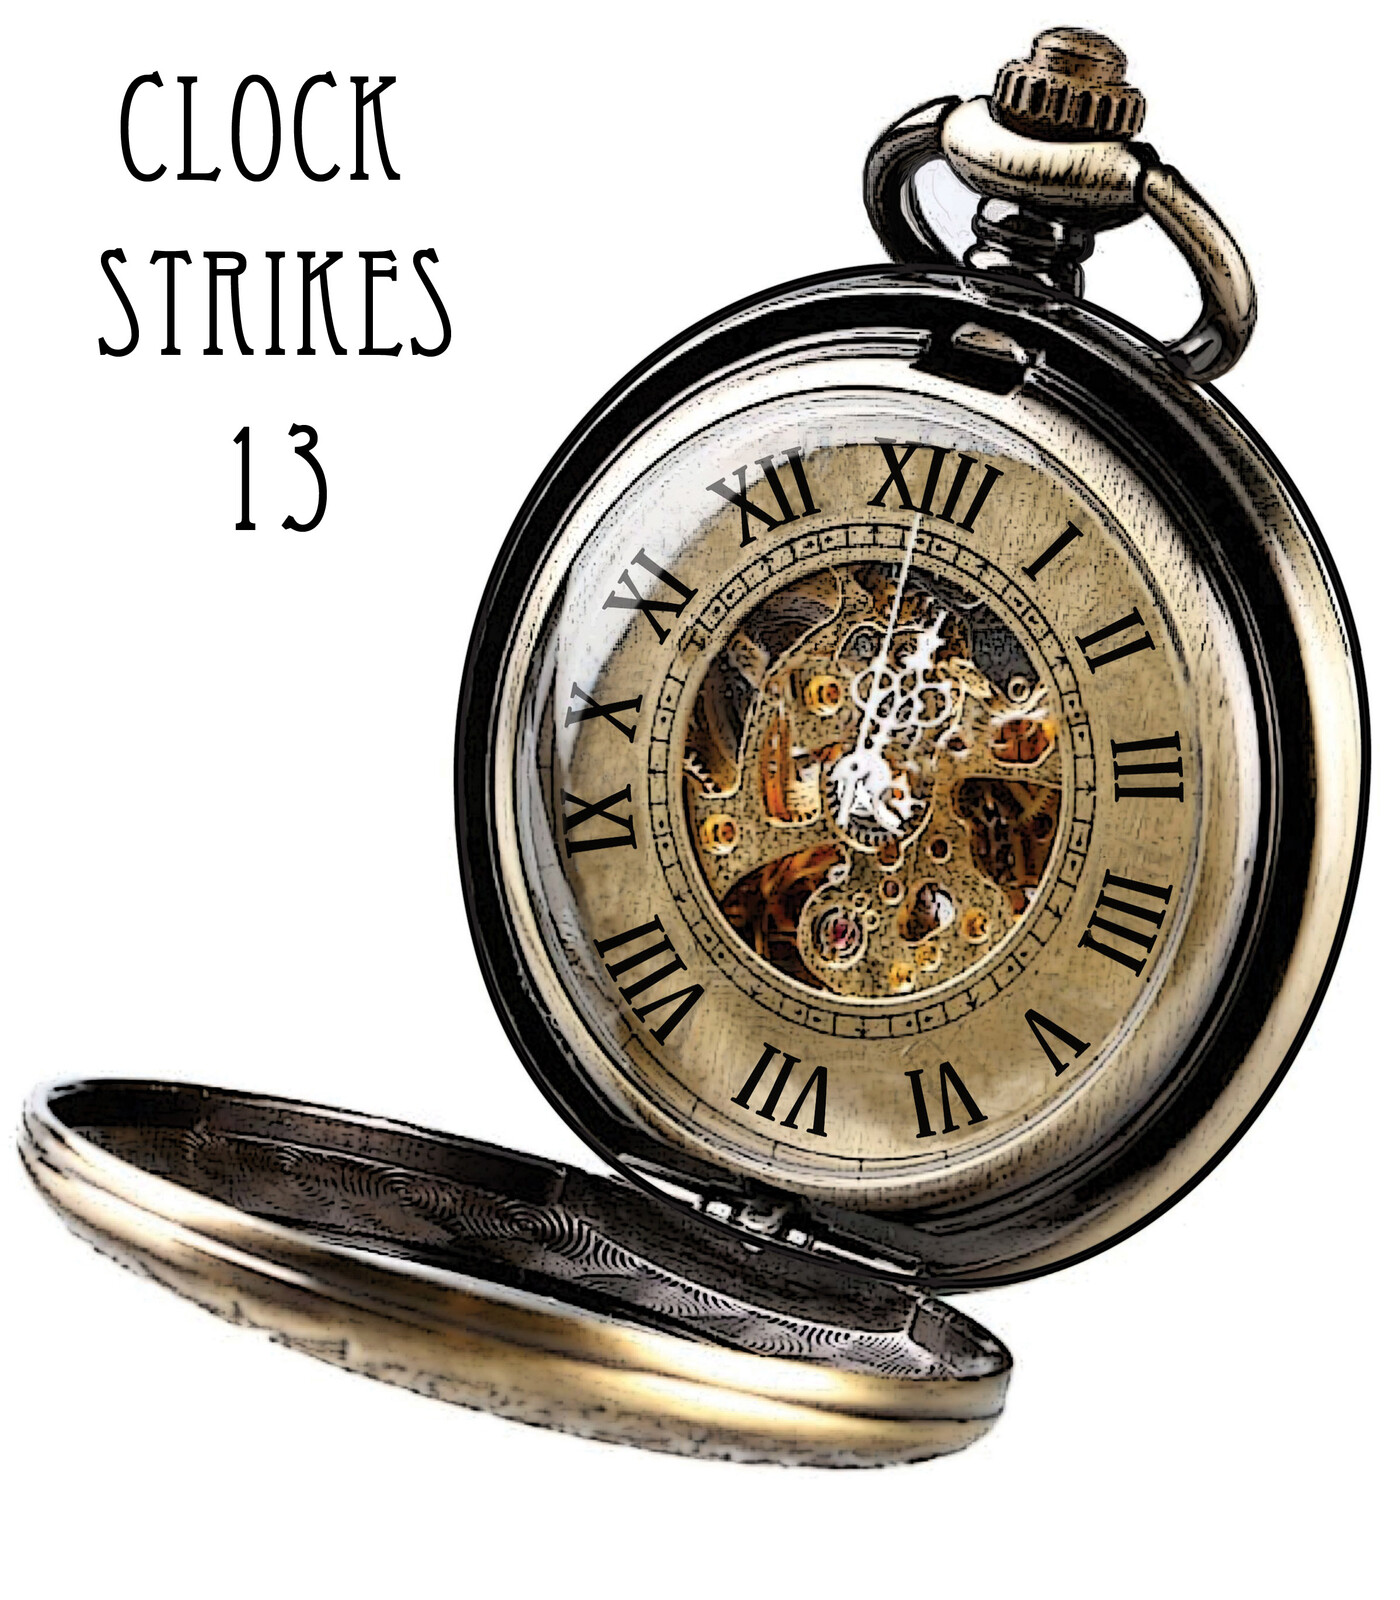 Clock Strikes 13 Productions